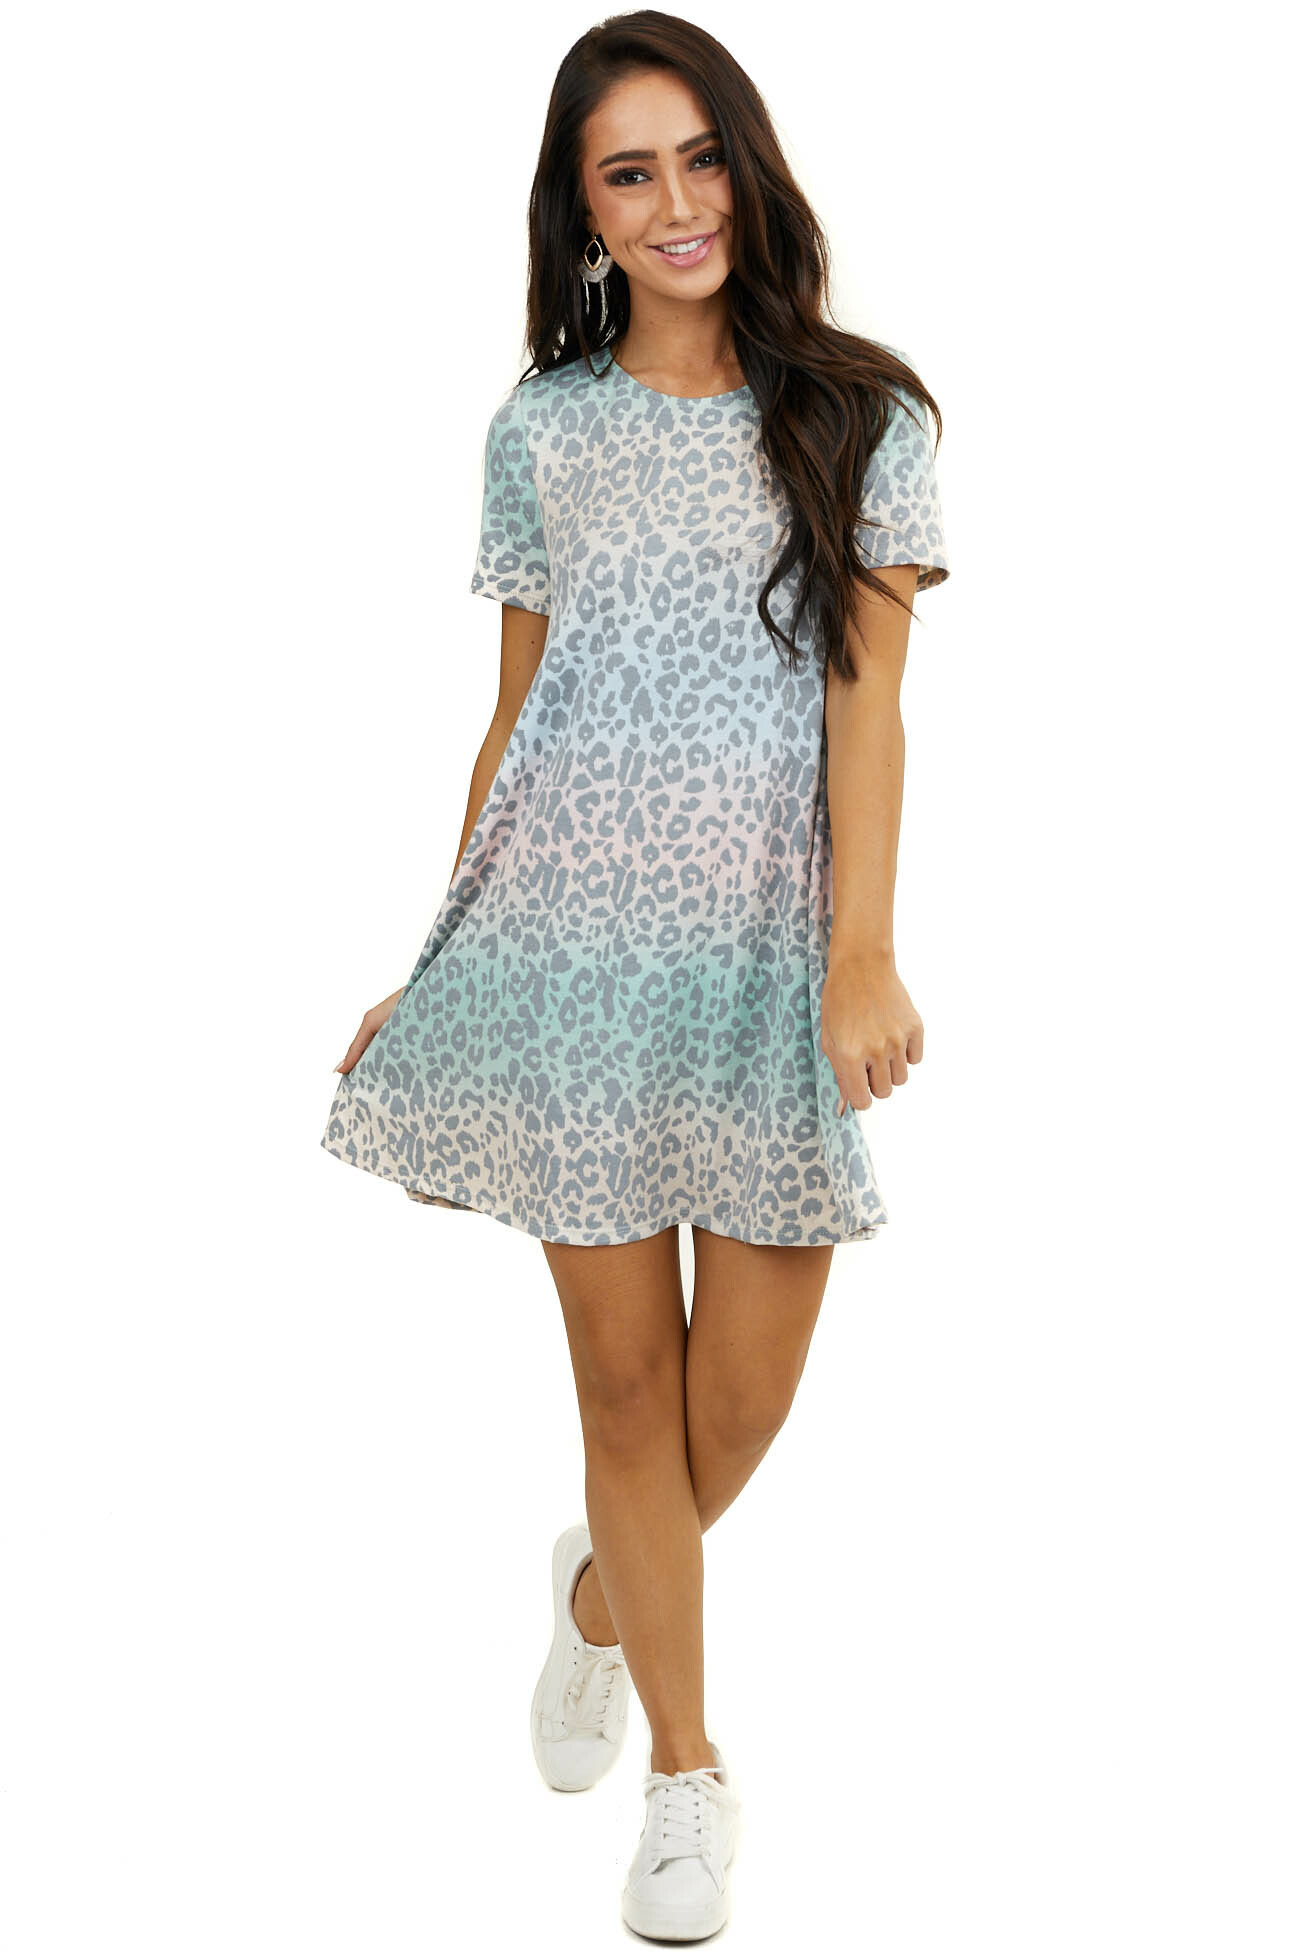 Multicolor Leopard Print Mini Dress with Hidden Pockets